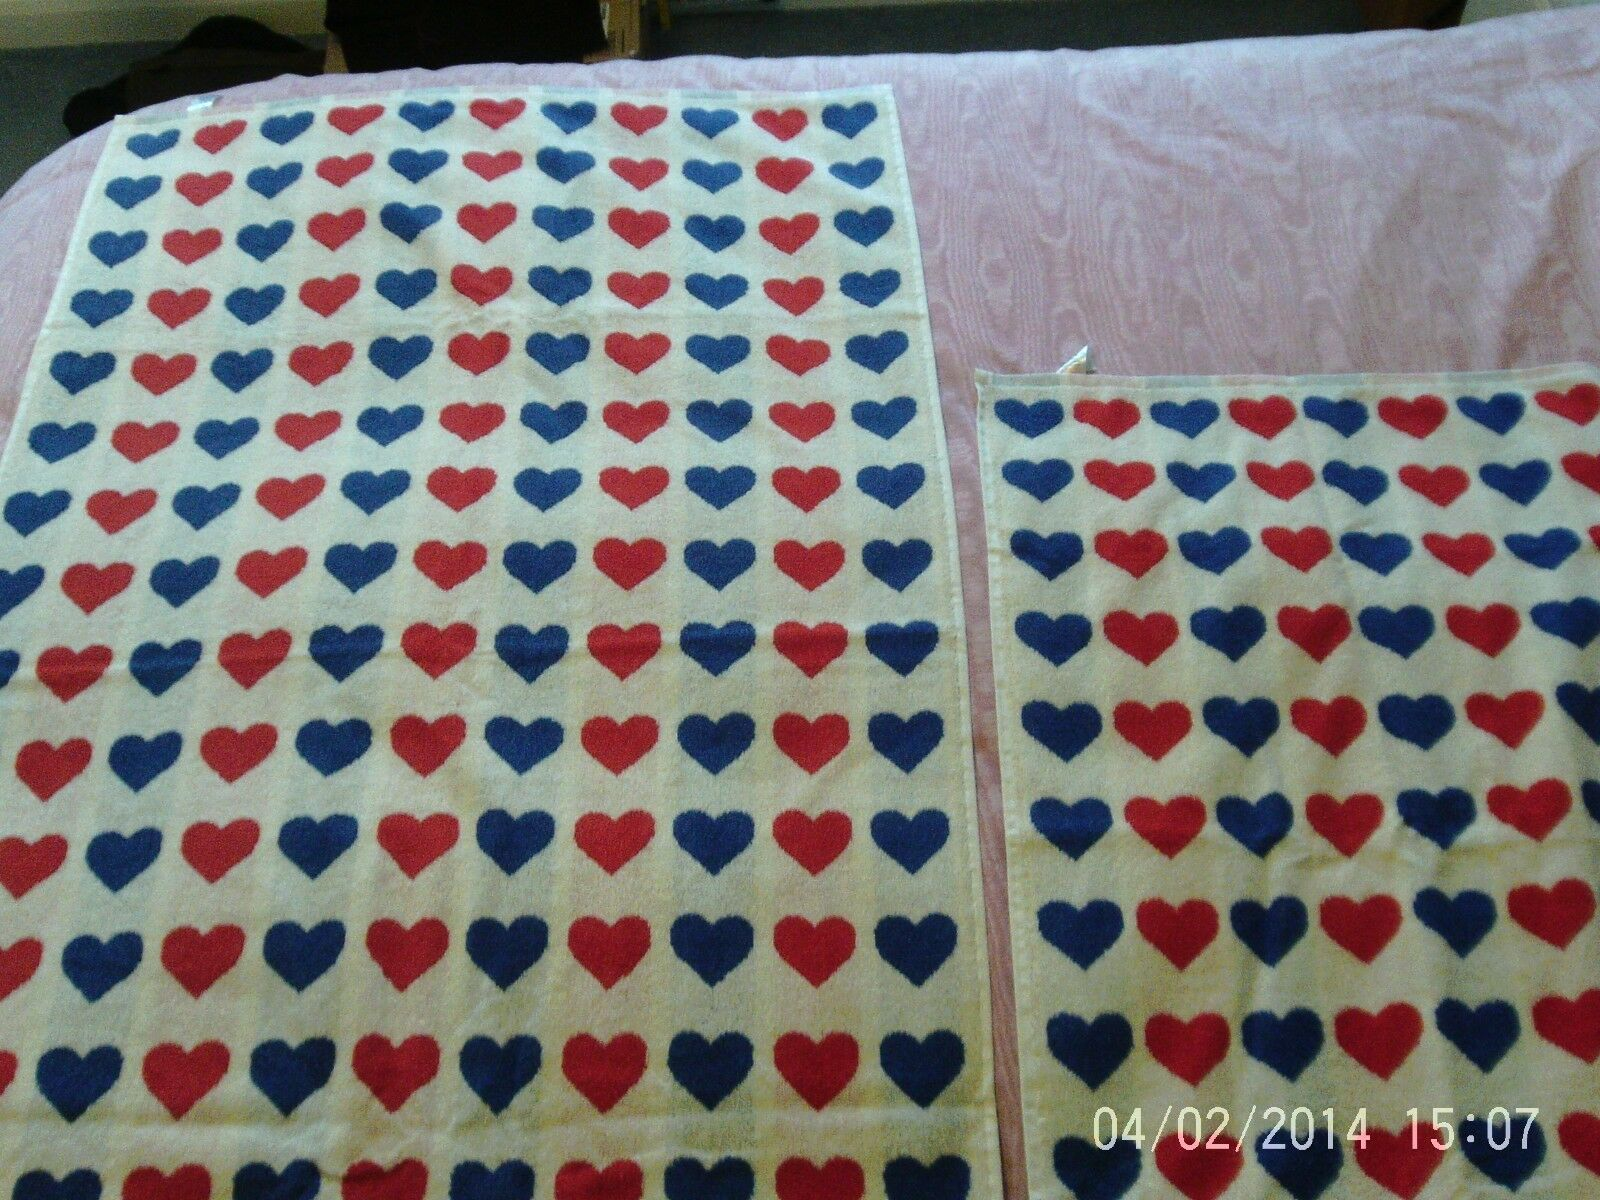 Brand New Heart Design Jacquard Set of Bath and Hand 100% Cotton Towels by Next